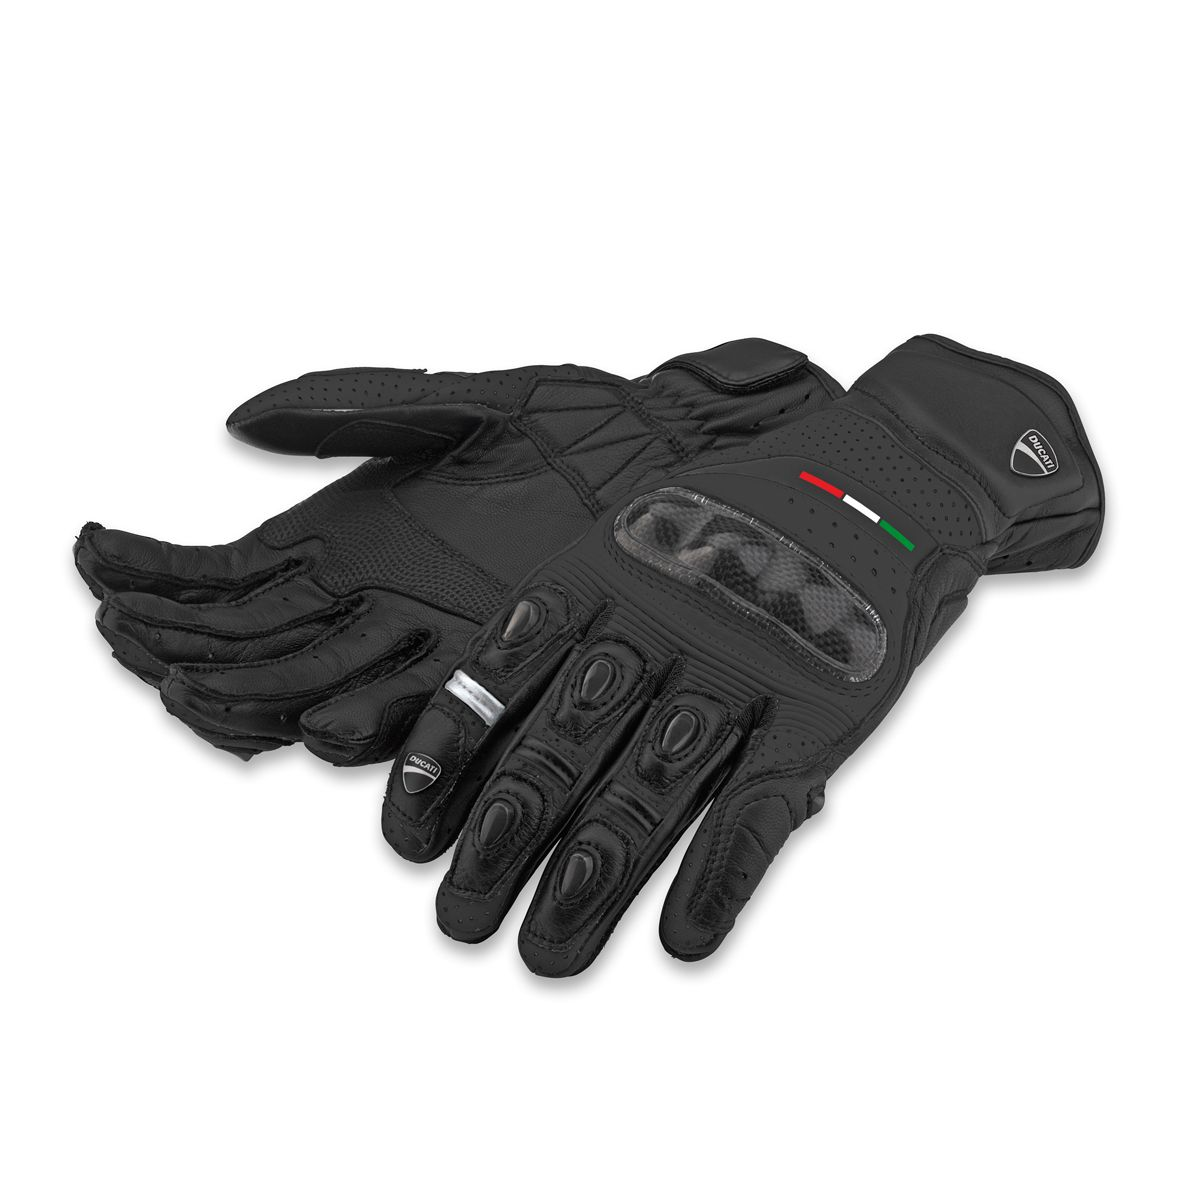 Leather motorcycle skeleton gloves - Guantes De Piel Diavel 14 Negros Ducati Diavelmotorcycle Glovesleather